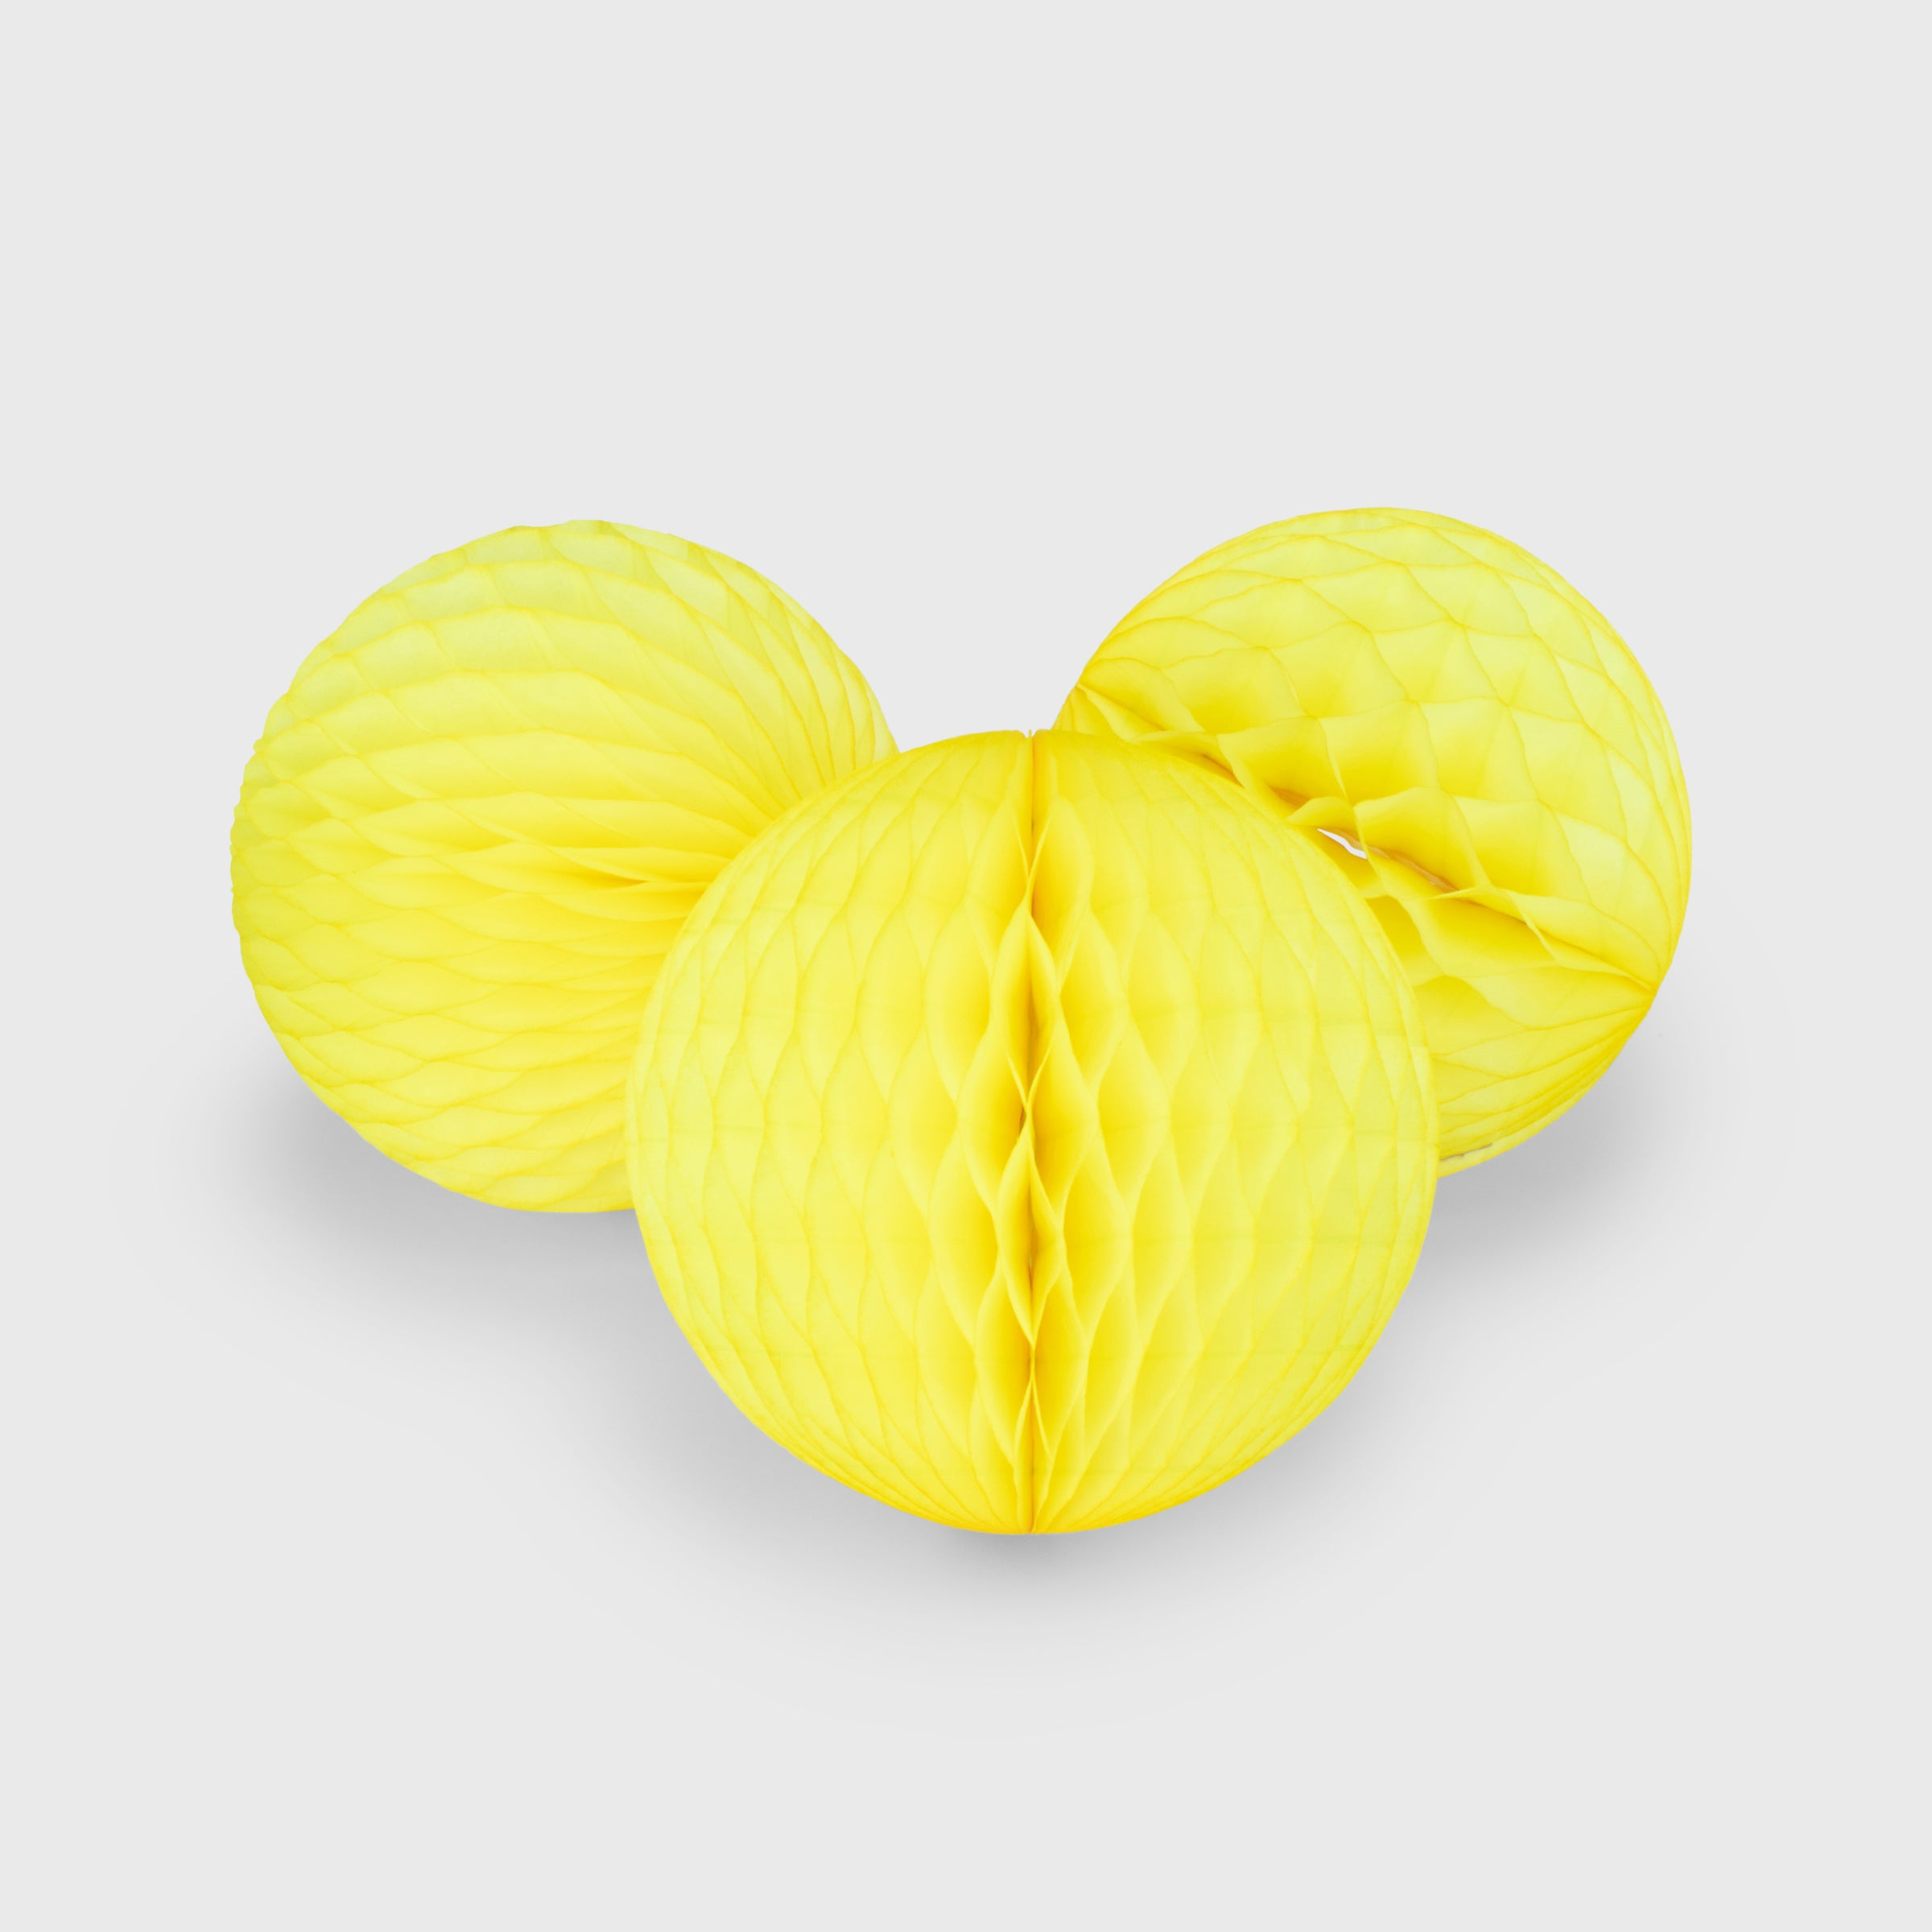 Honeycomb Ball 15cm Pack of 3, Lemon Sherbet